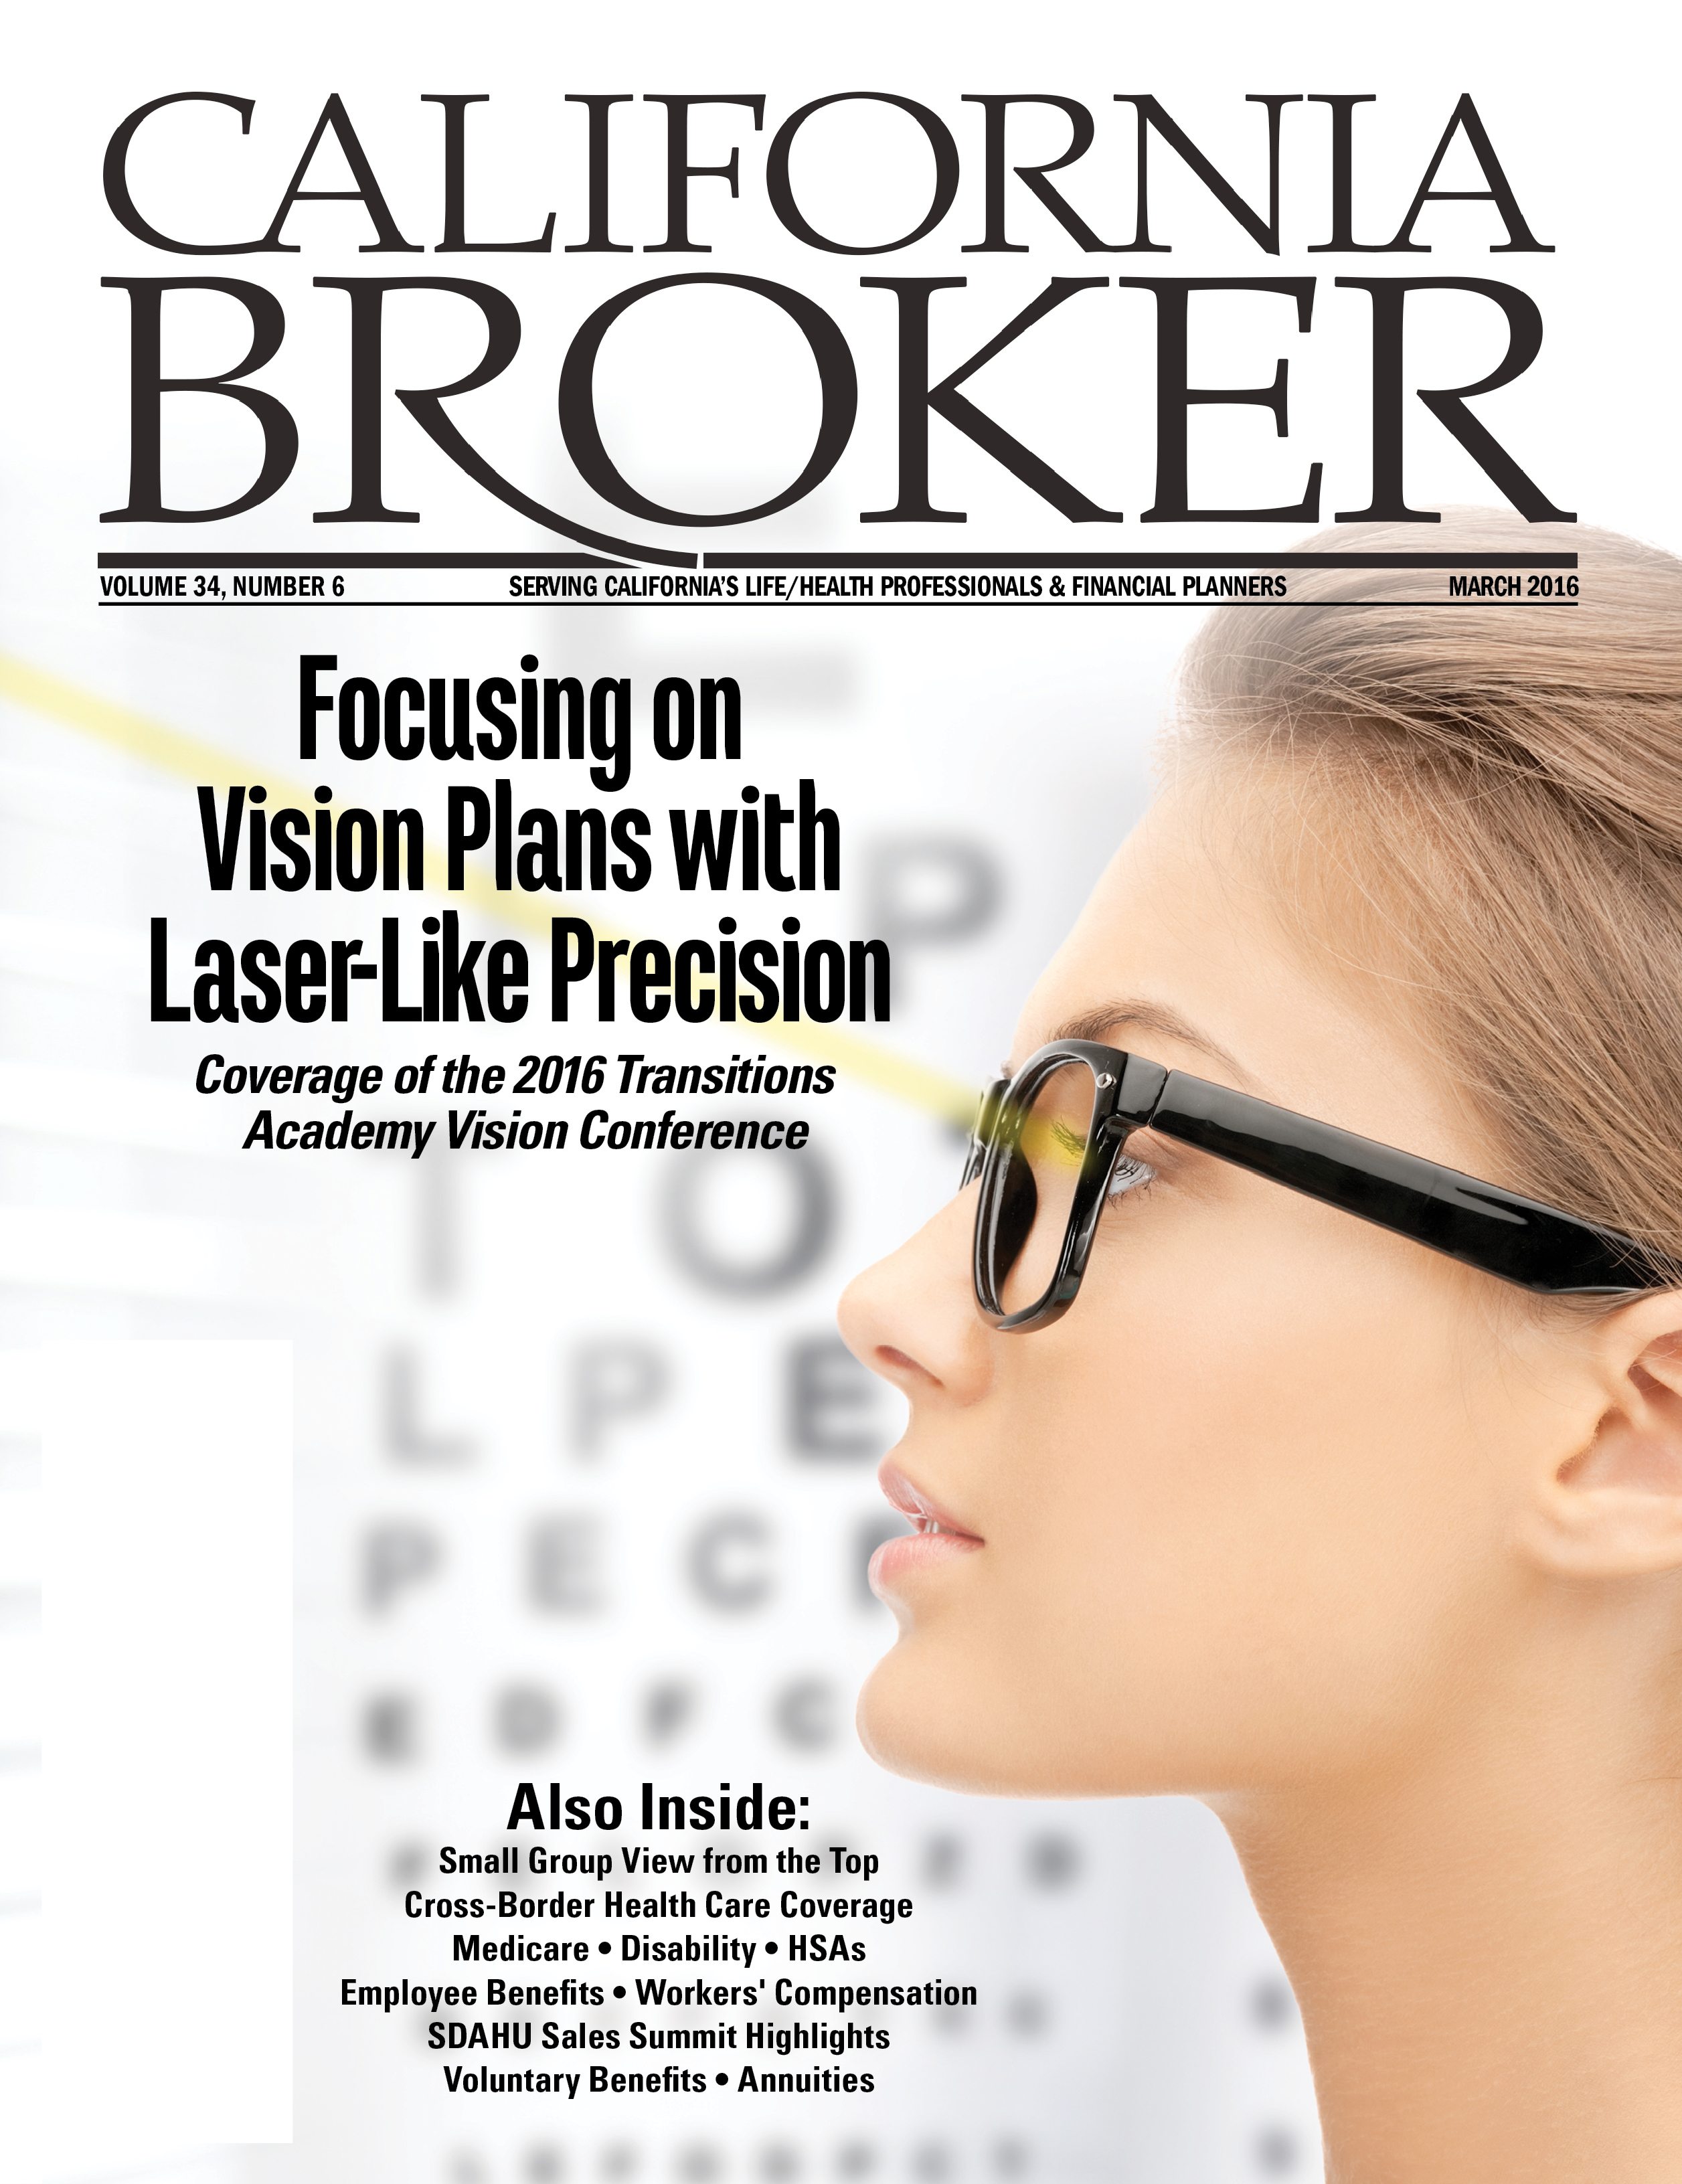 California-Broker_March_2016-Cover